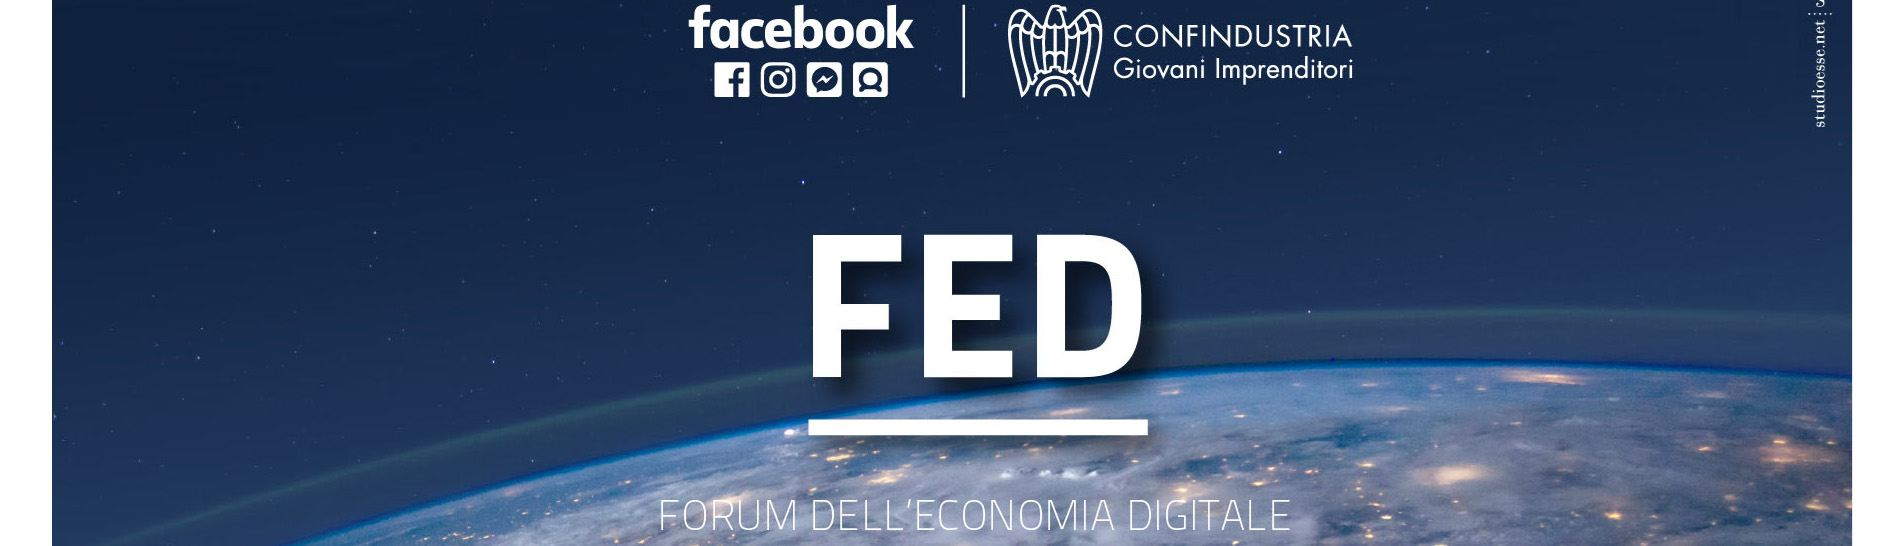 Forum dell'Economia digitale